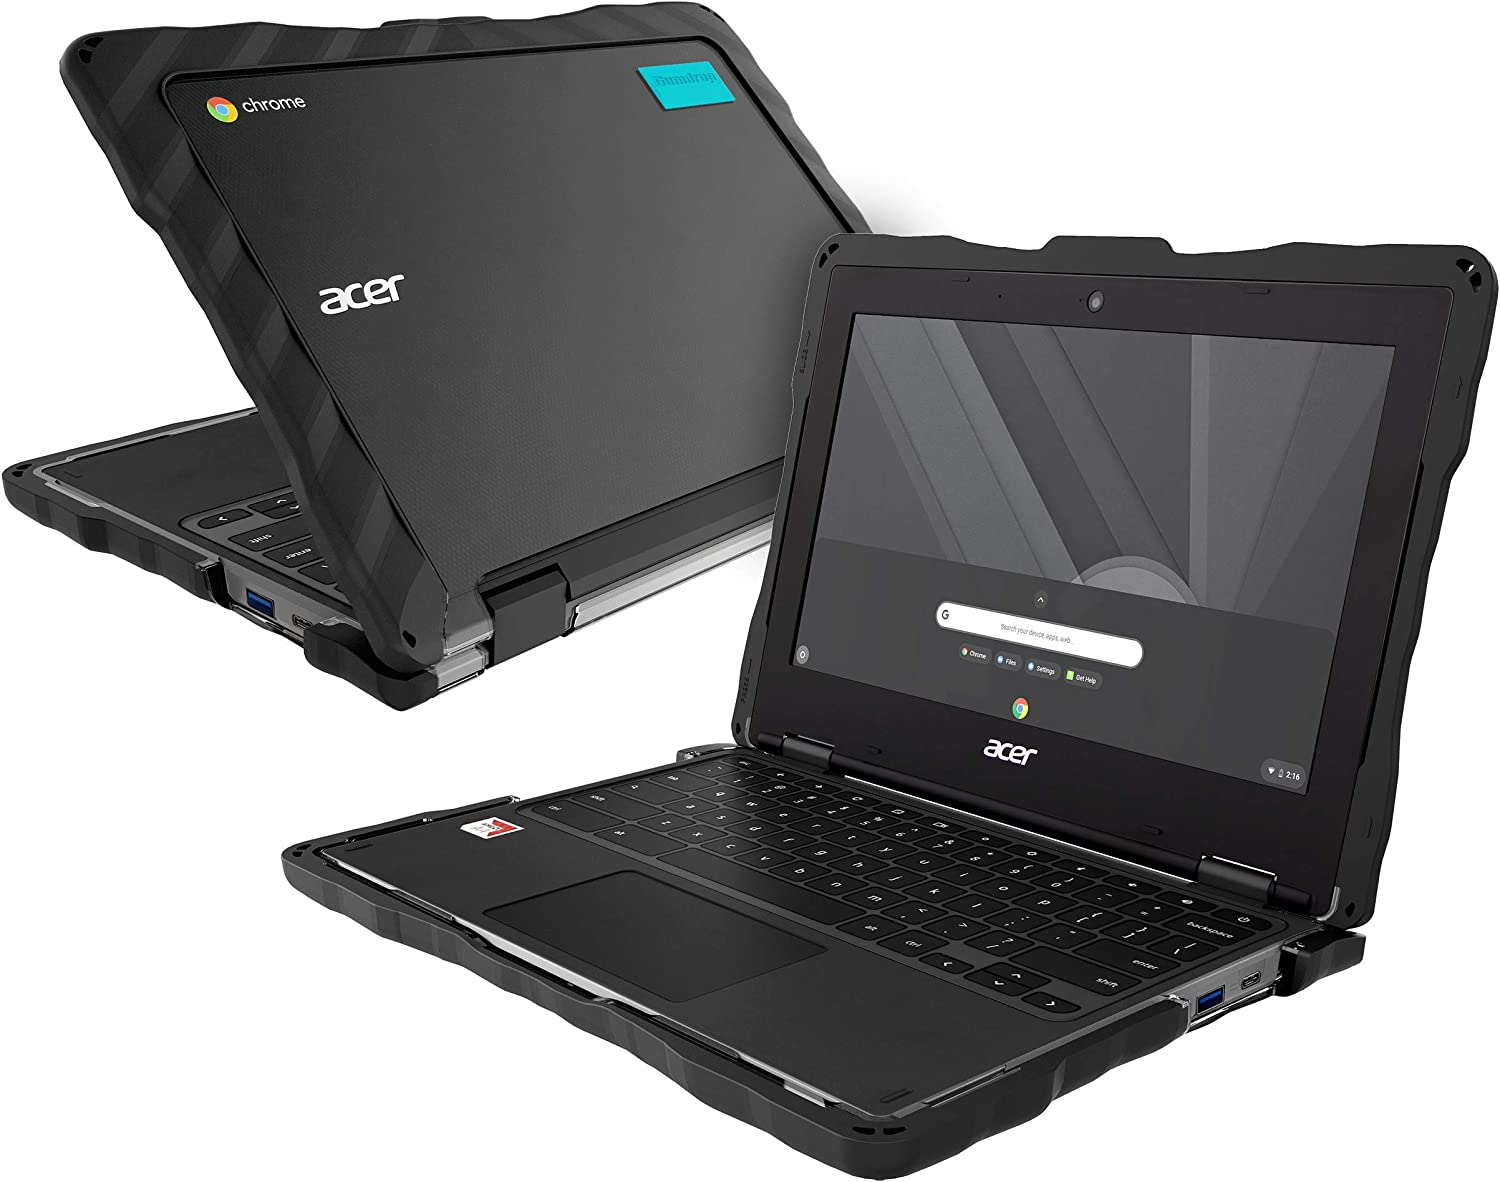 GumDrop DropTech Case Designed for Acer Chromebook 311 (C721) Chrome Laptop - Black, Rugged, Always-on, School-Ready, Shock Absorbing, Extreme Drop Protection Cover